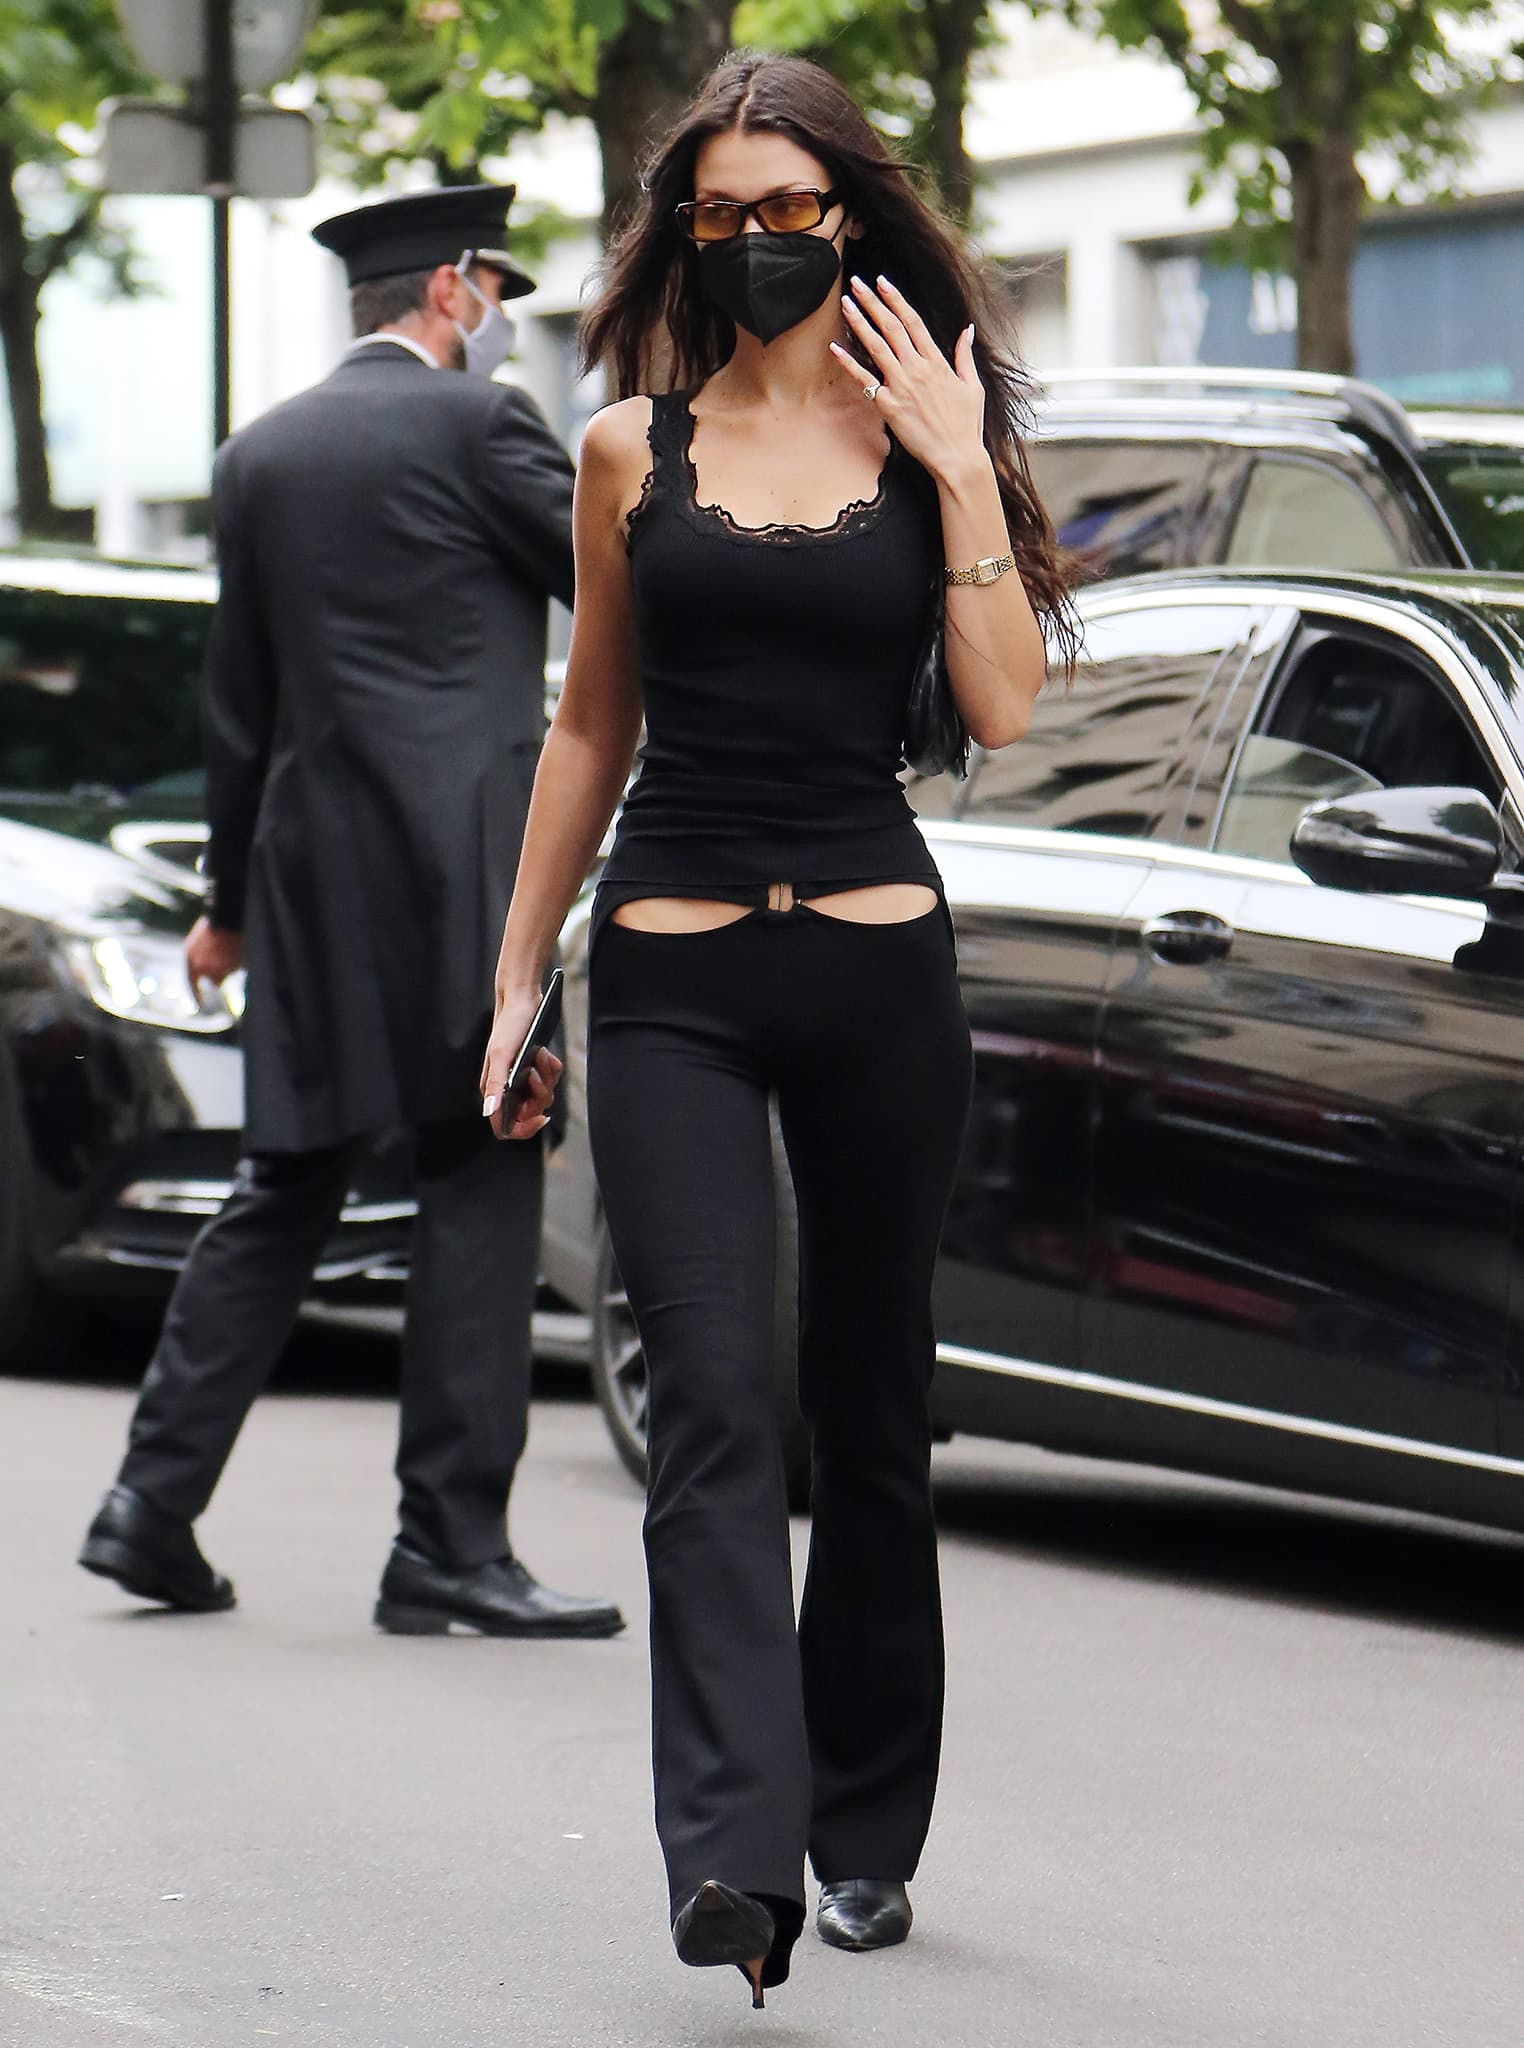 Bella Hadid pairs a Rosemunde lacy top with I.Am.Gia racy hip cutout pants